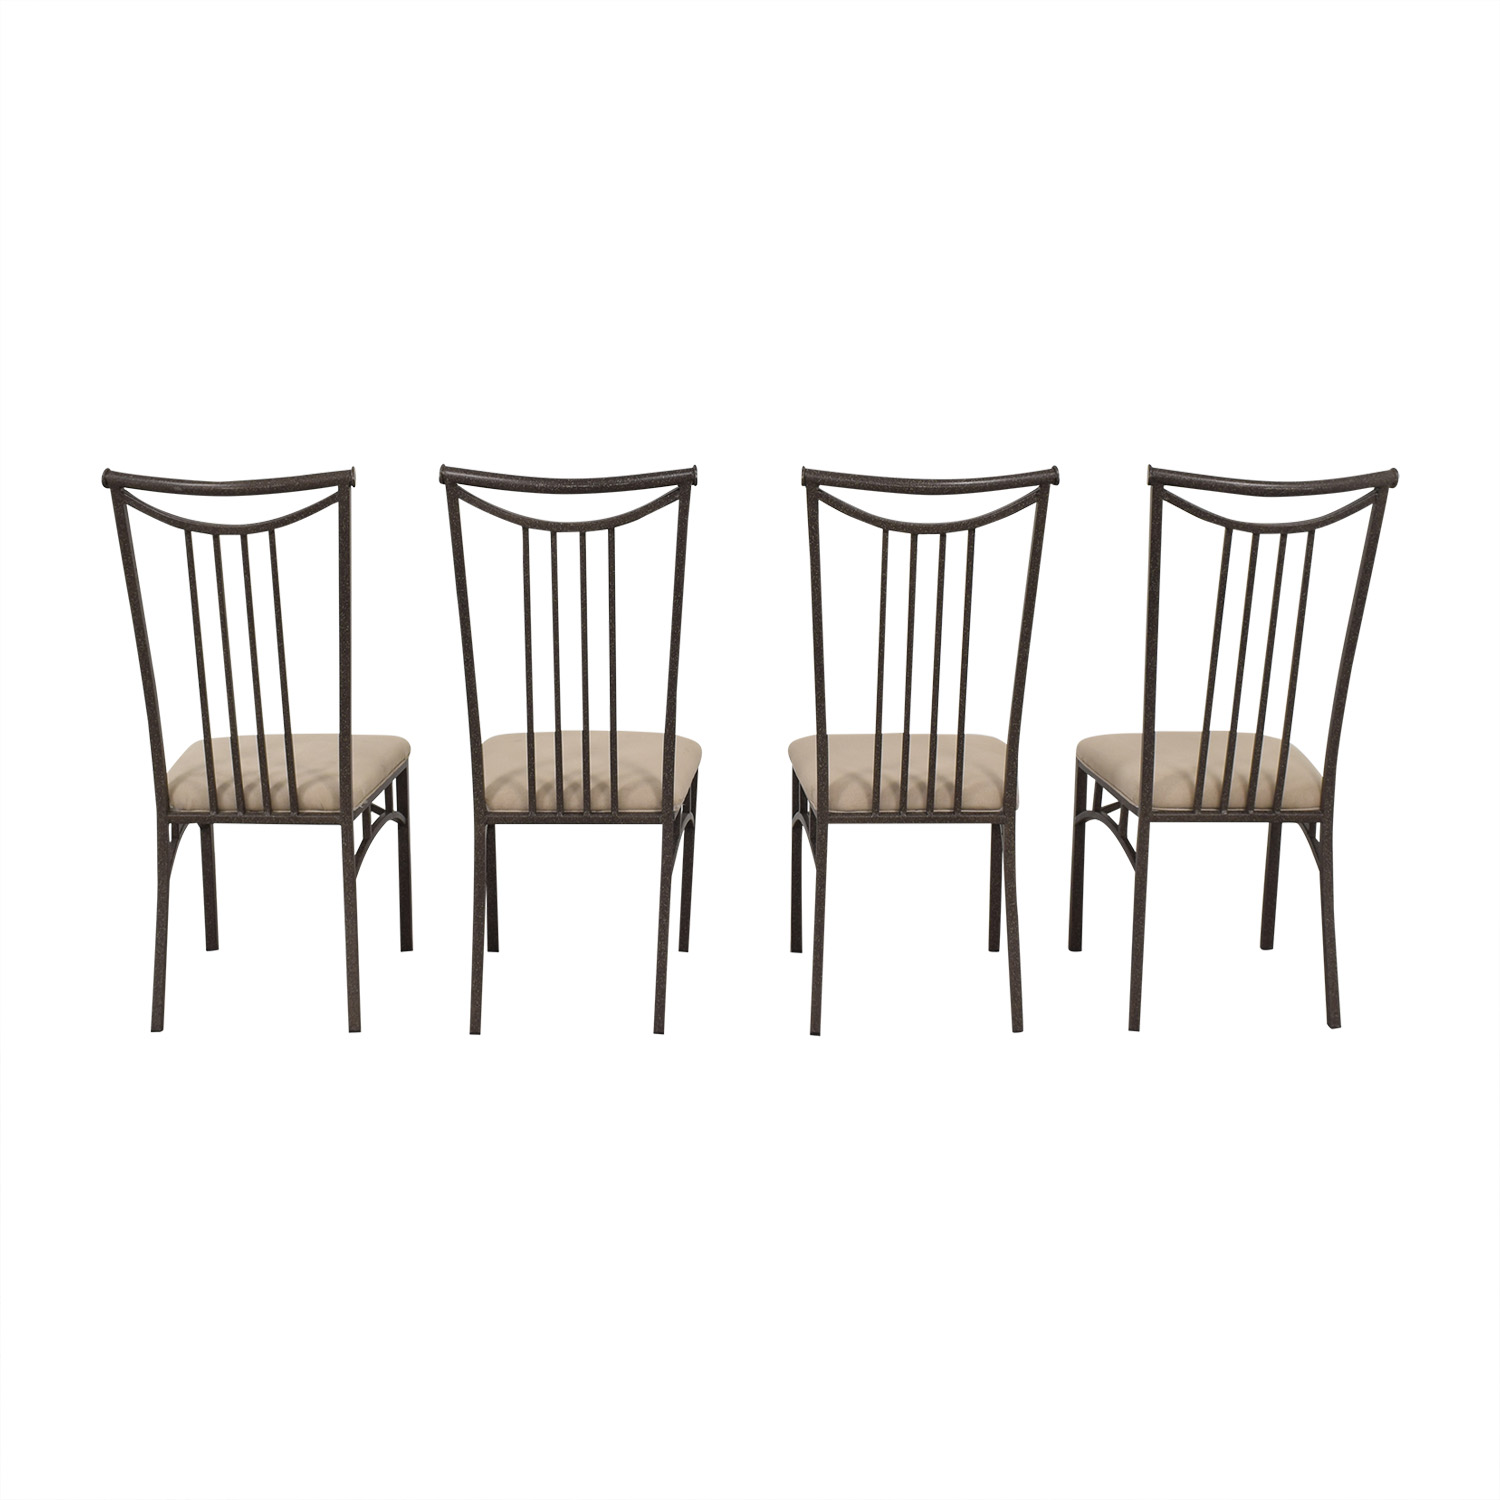 Macy's Macy's Dining Chairs on sale